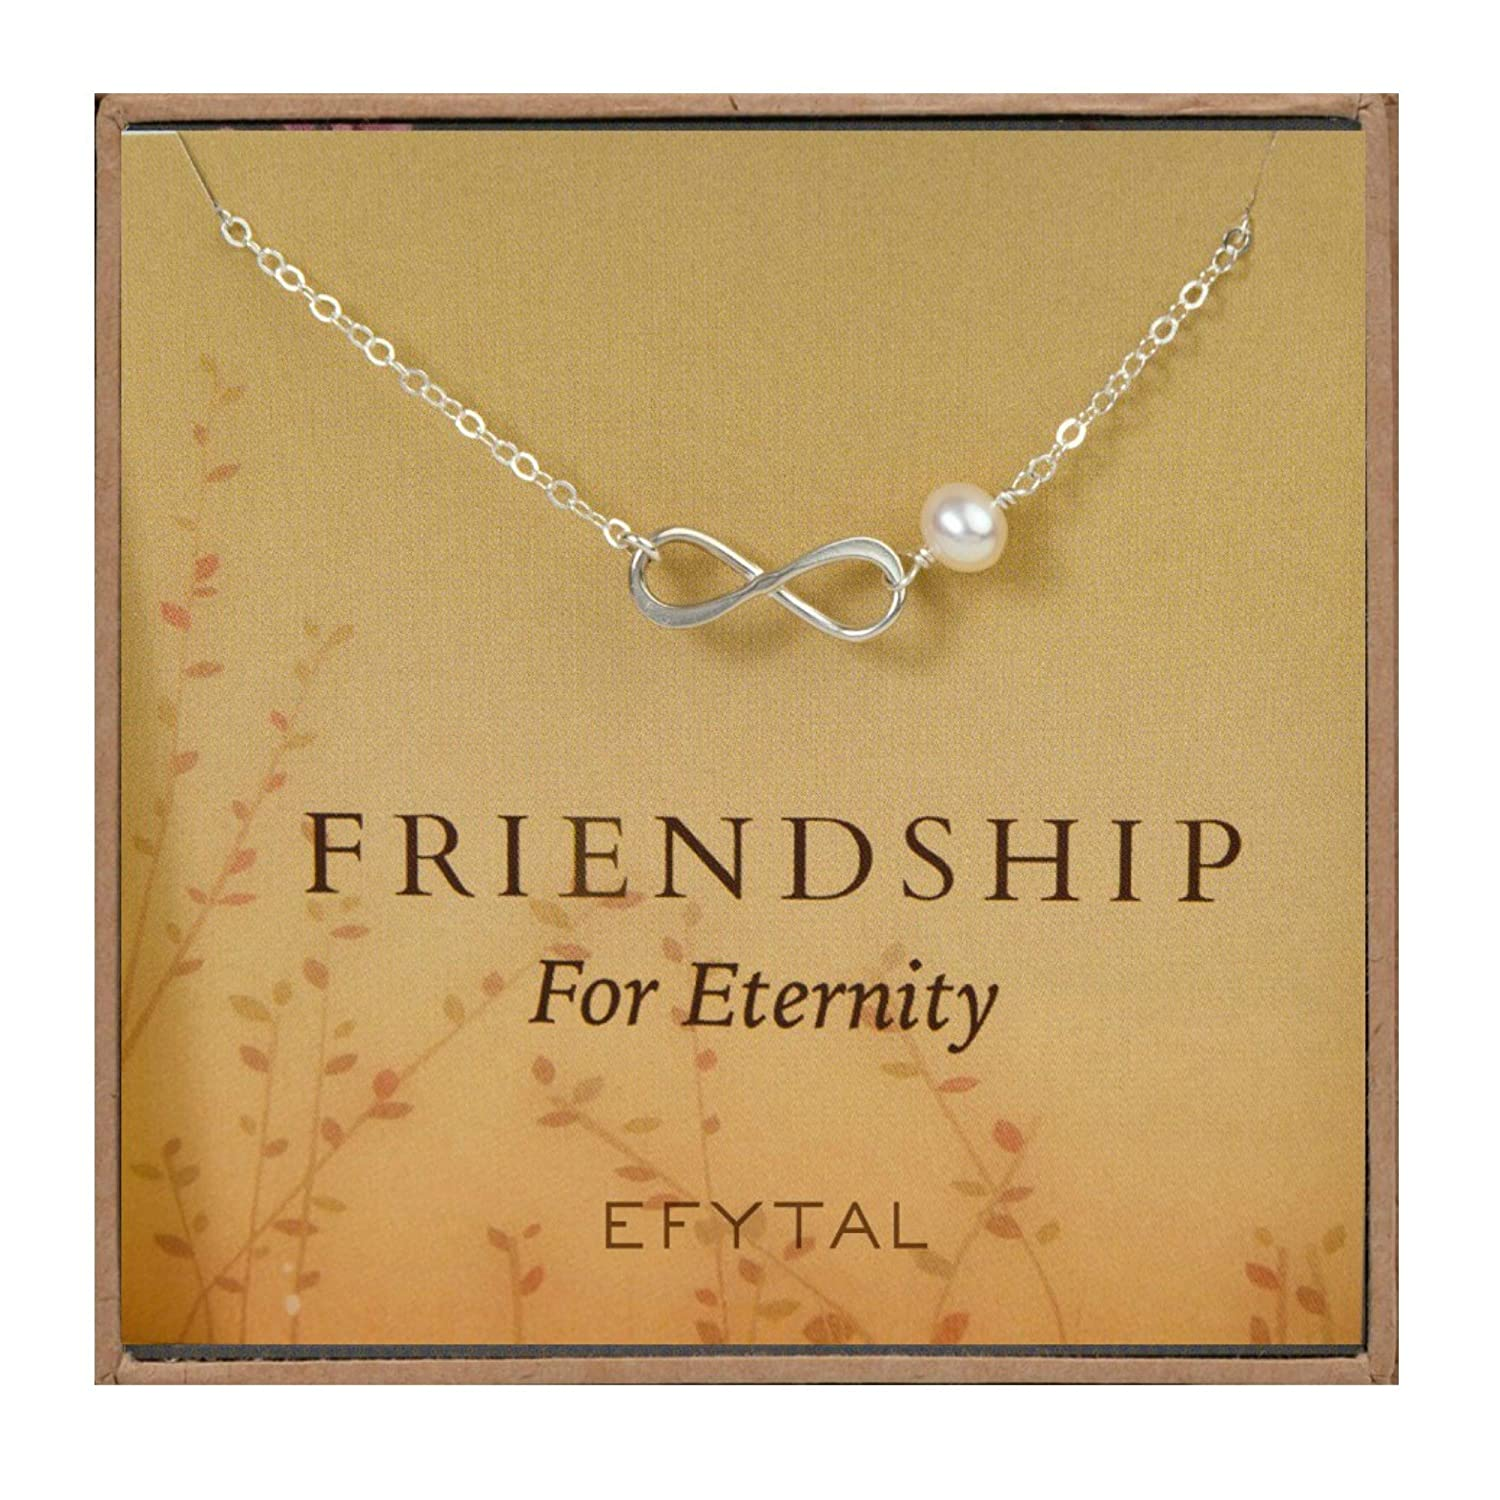 10c08f2b90 Amazon.com: EFYTAL Sterling Silver Infinity Necklace - Cultured Pearl  Bridesmaids/Friendship Jewelry Gift: Jewelry